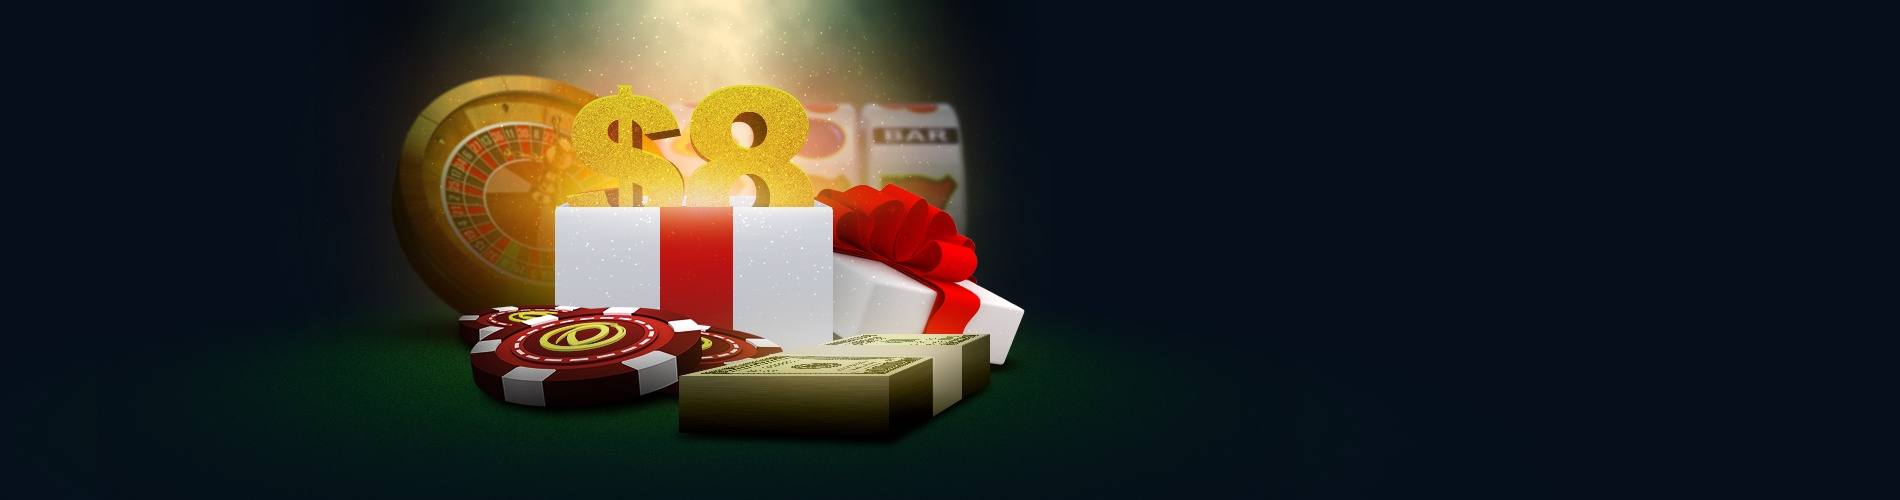 Online Poker Promotion: New Player Package